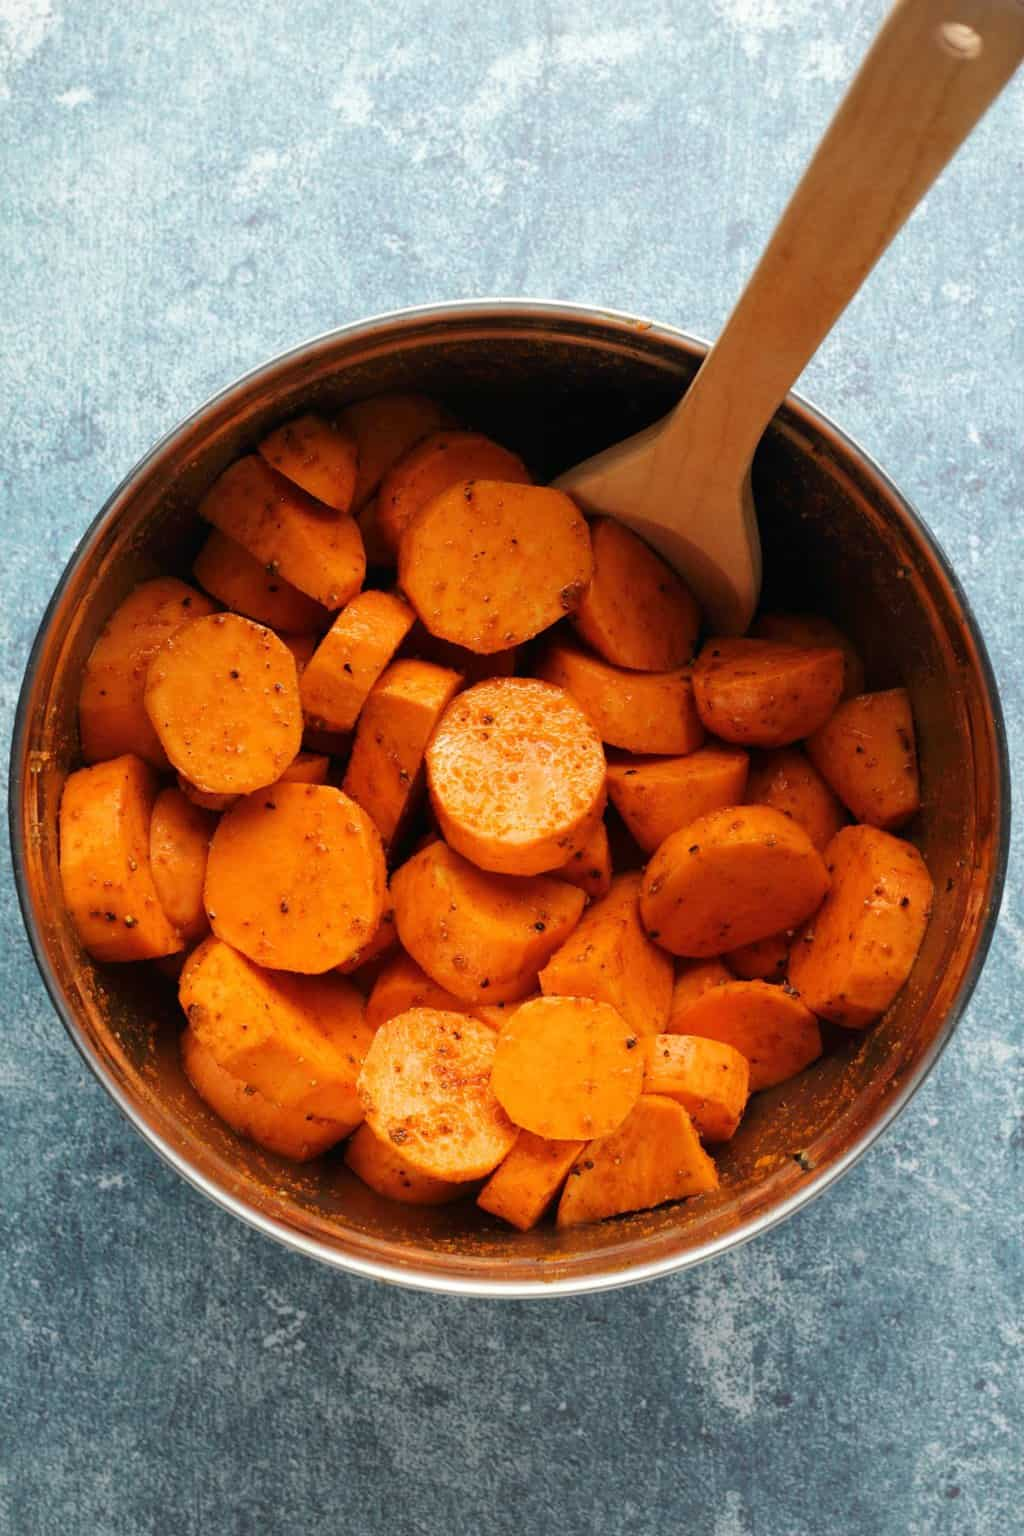 Sliced sweet potatoes in a silver bowl with a wooden spoon.